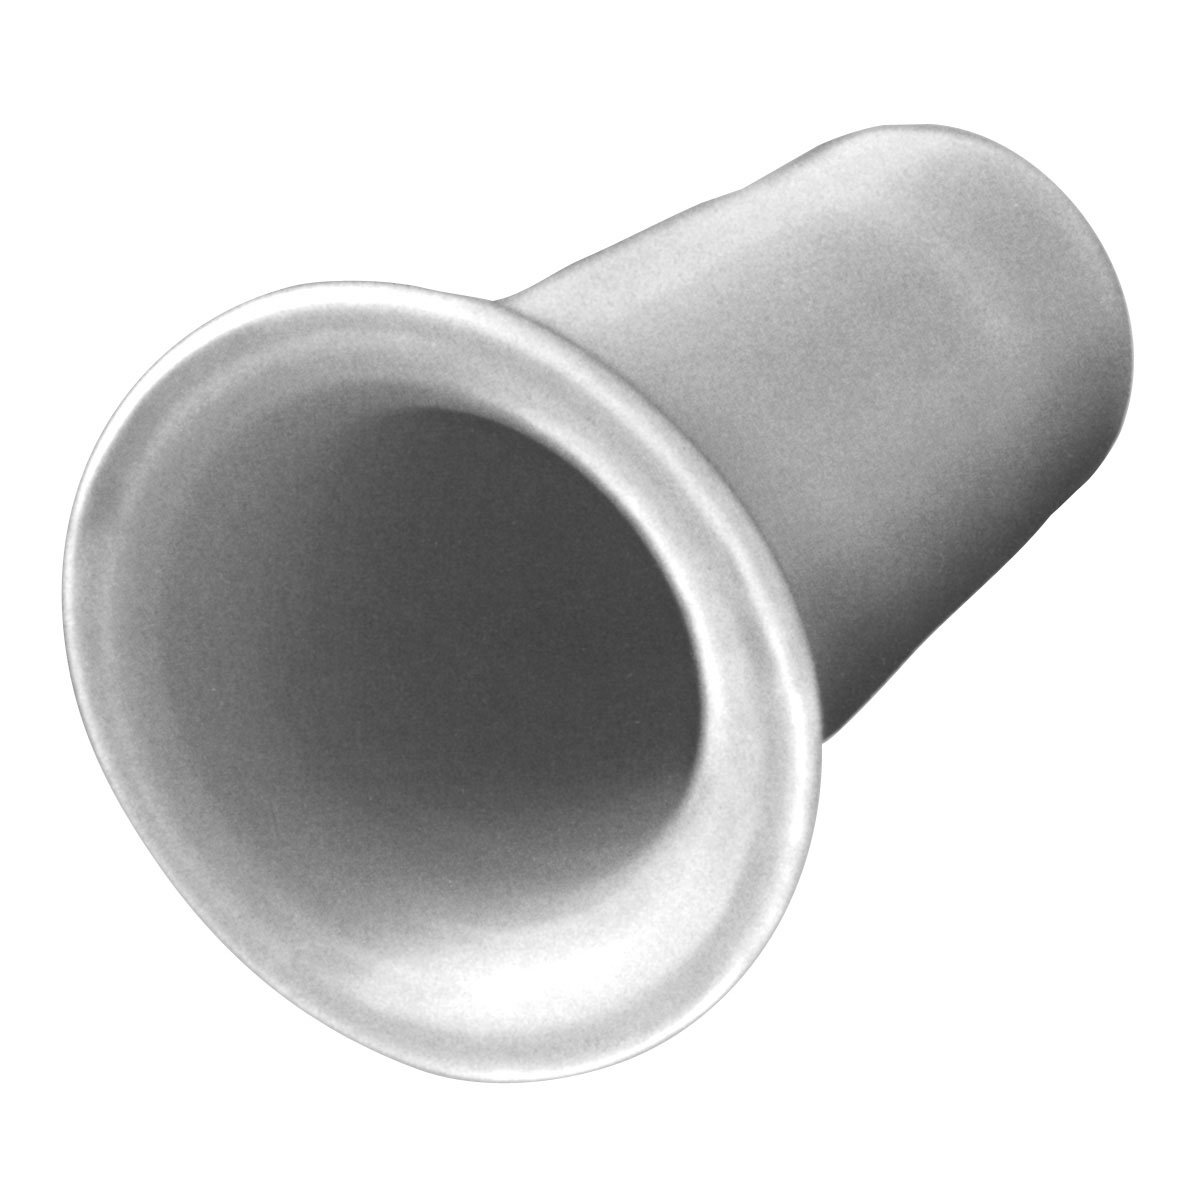 Drive Medical Rhinoguard Atomizer Tip Covers, Dispenser, Grey, 250 Count